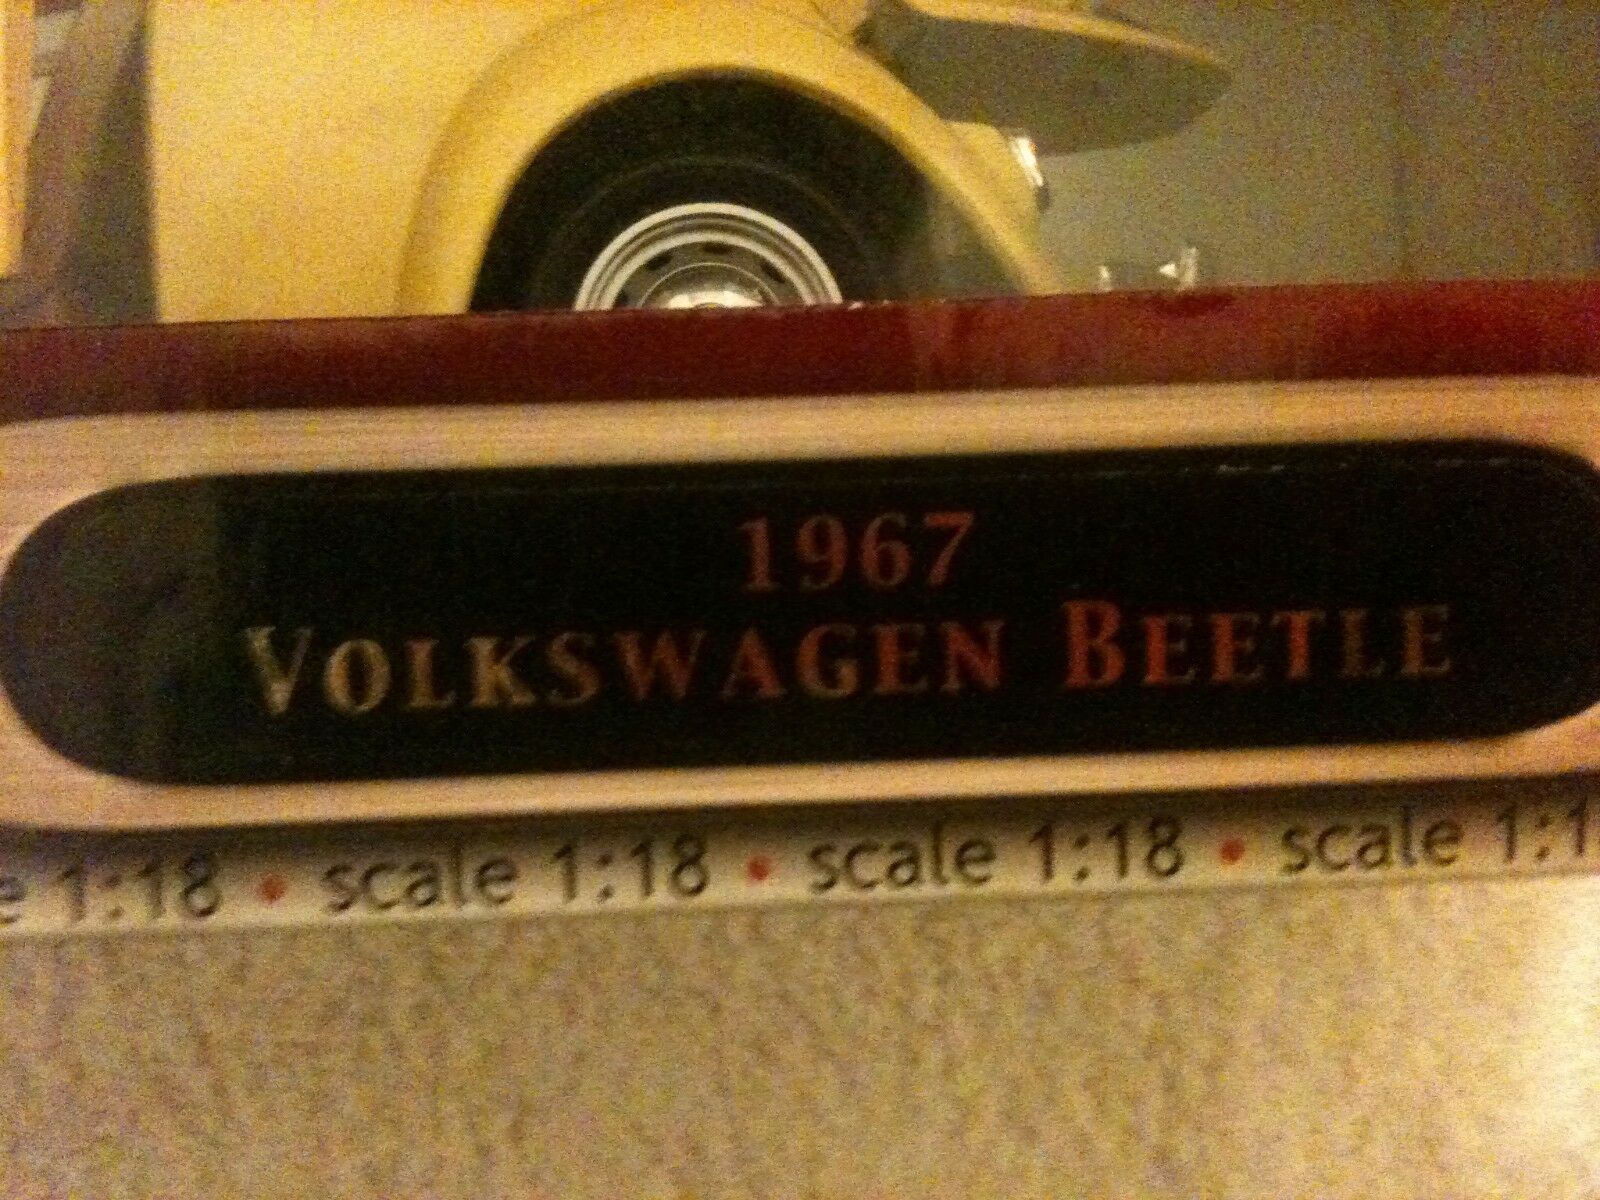 1967 VOLKSWAGEN BEETLE CAR CAR CAR DIE CAST METAL DELUXE EDITION QUALITY HAND MADE 0abeb3